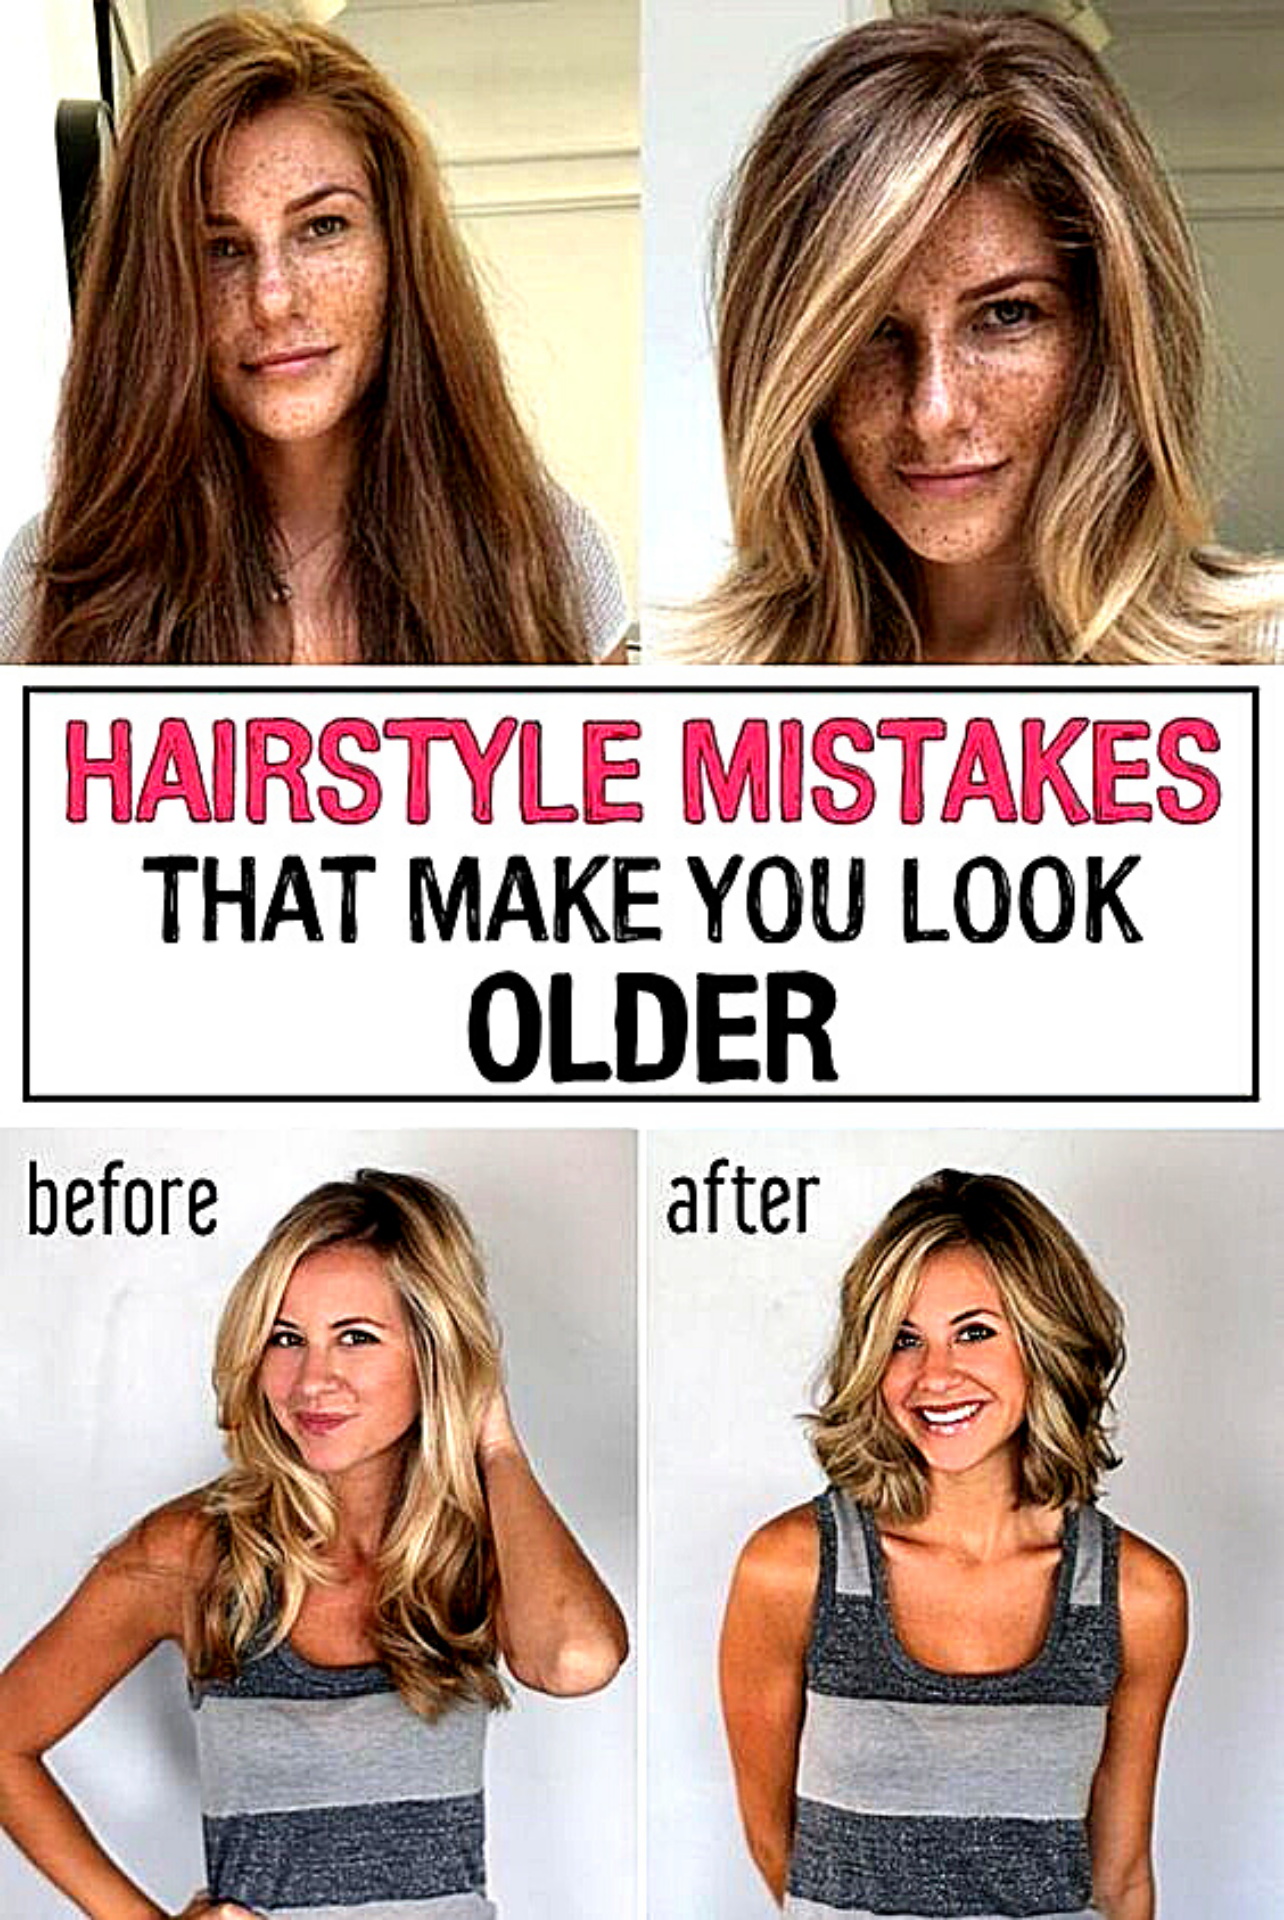 11 Hairstyle Mistakes That Are Aging You In 2020 Mom Hairstyles Hairstyle Hair Mistakes